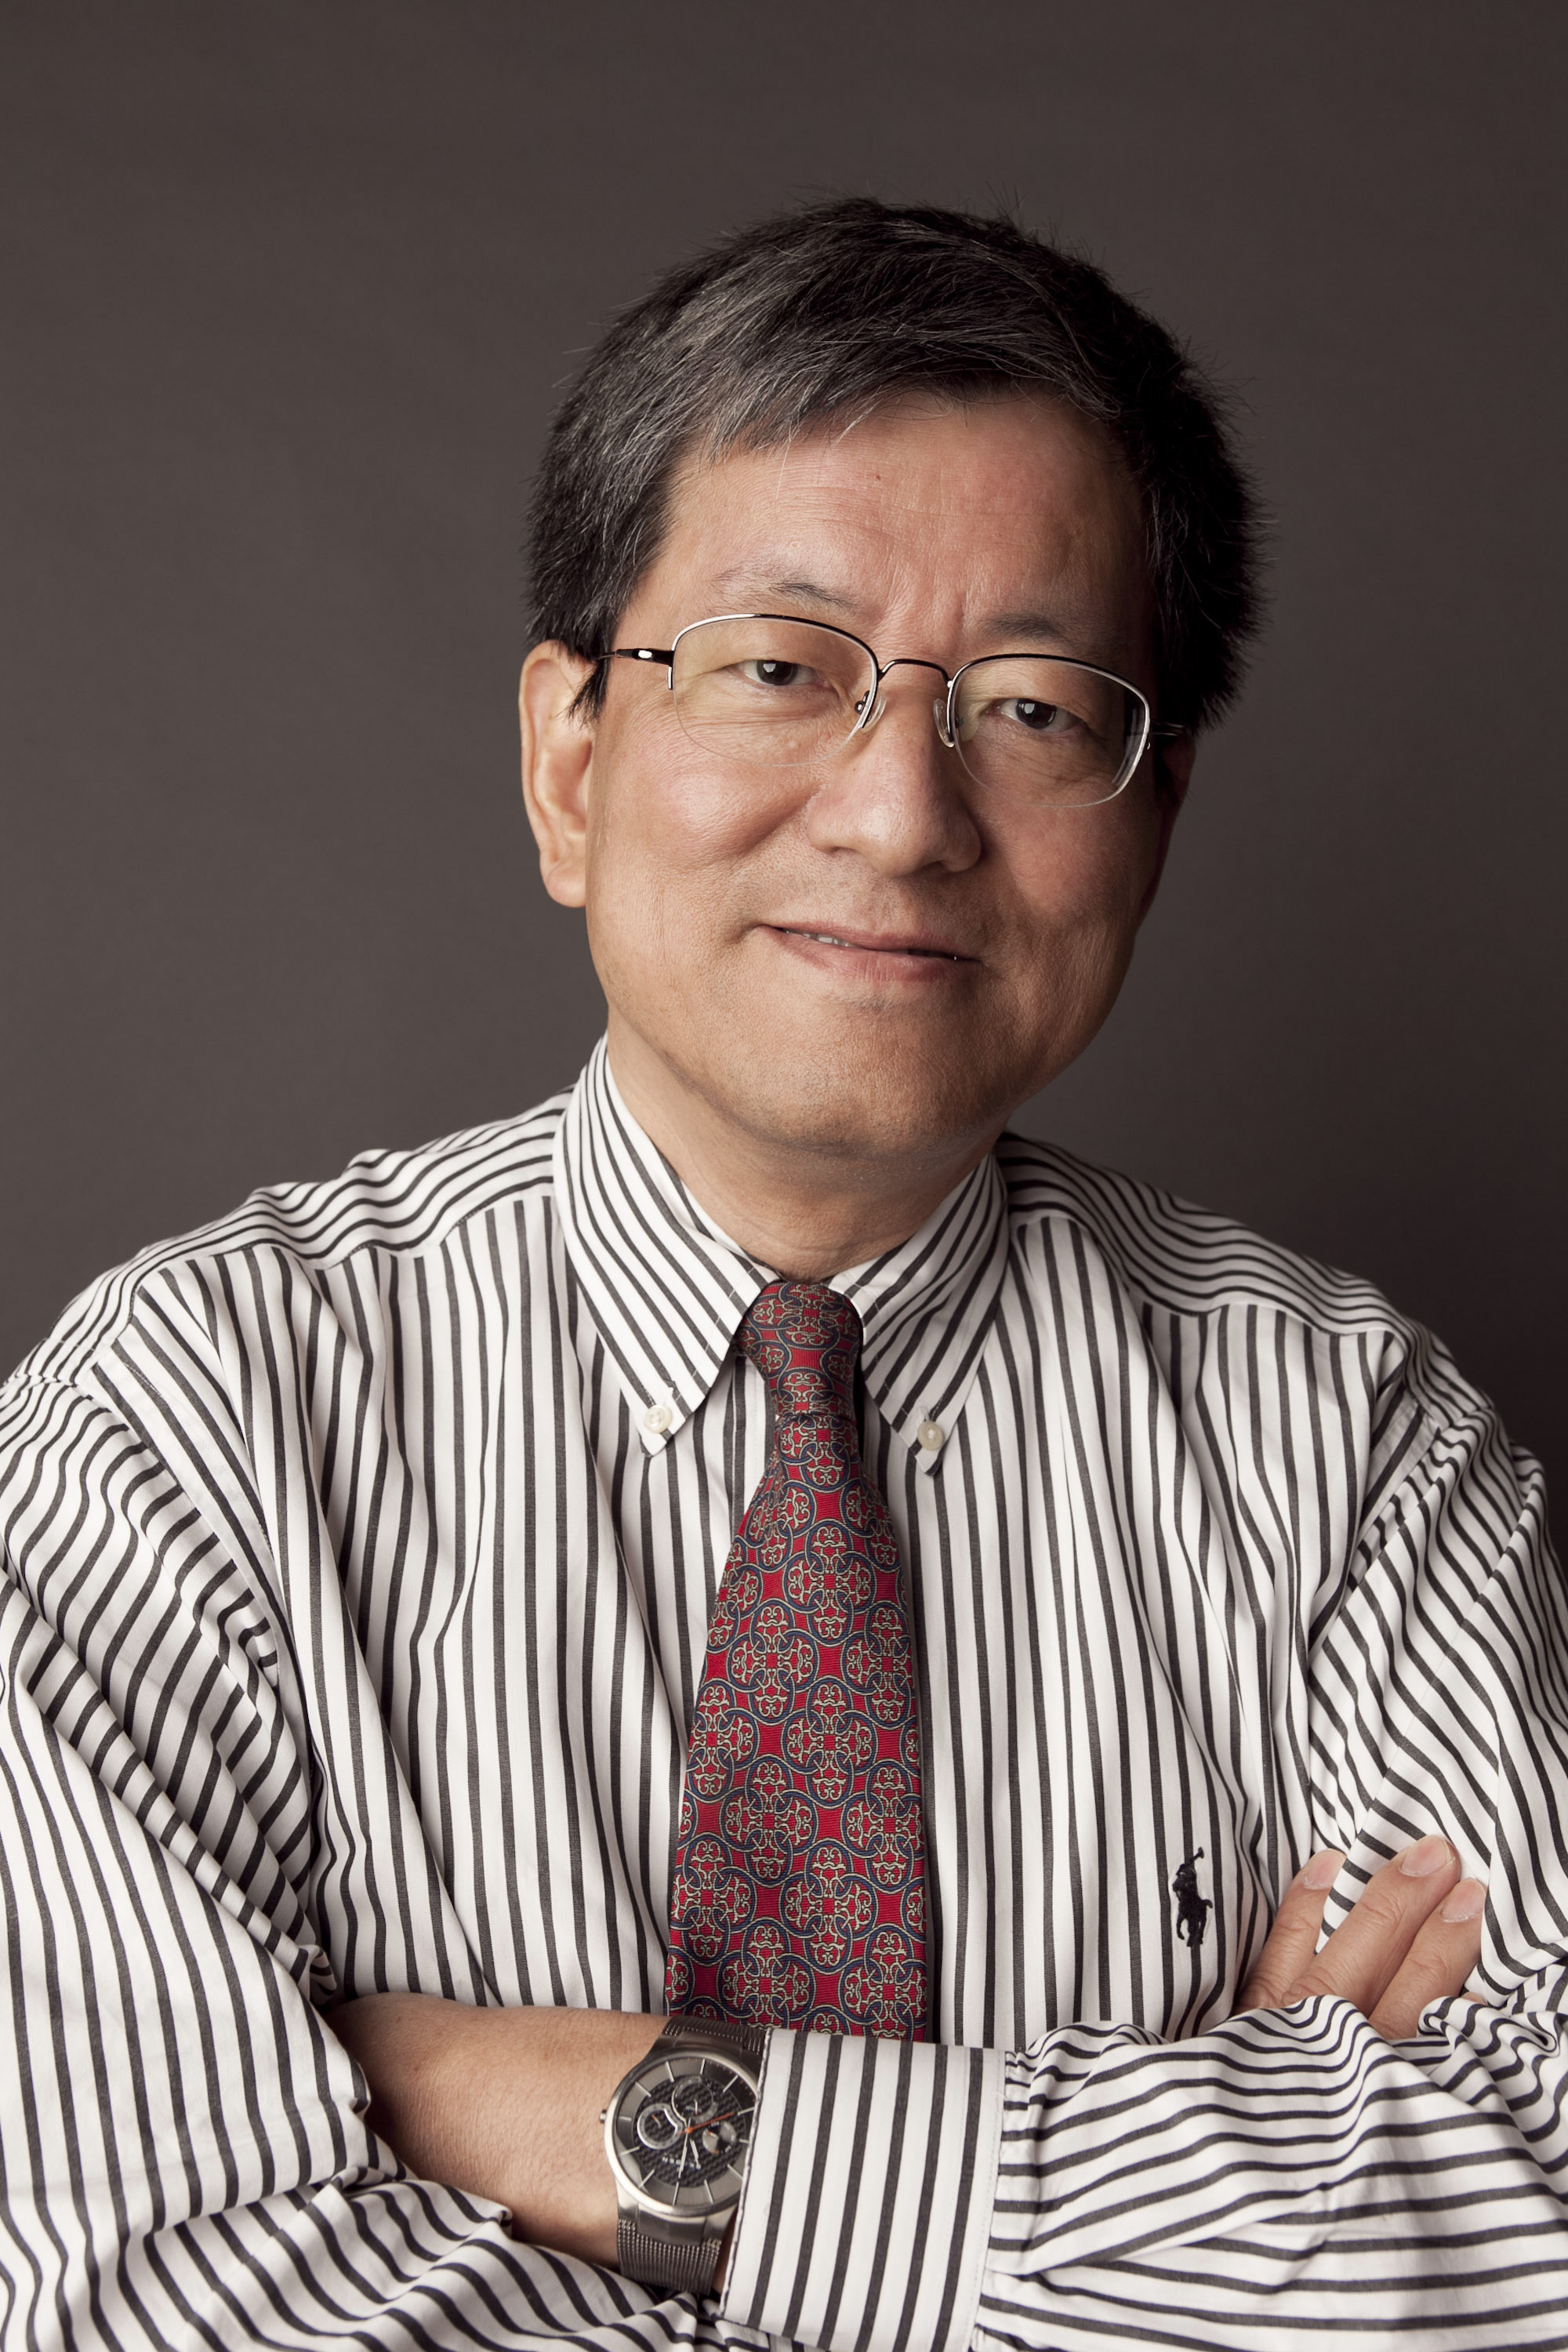 Hung-wen (Ben) Liu